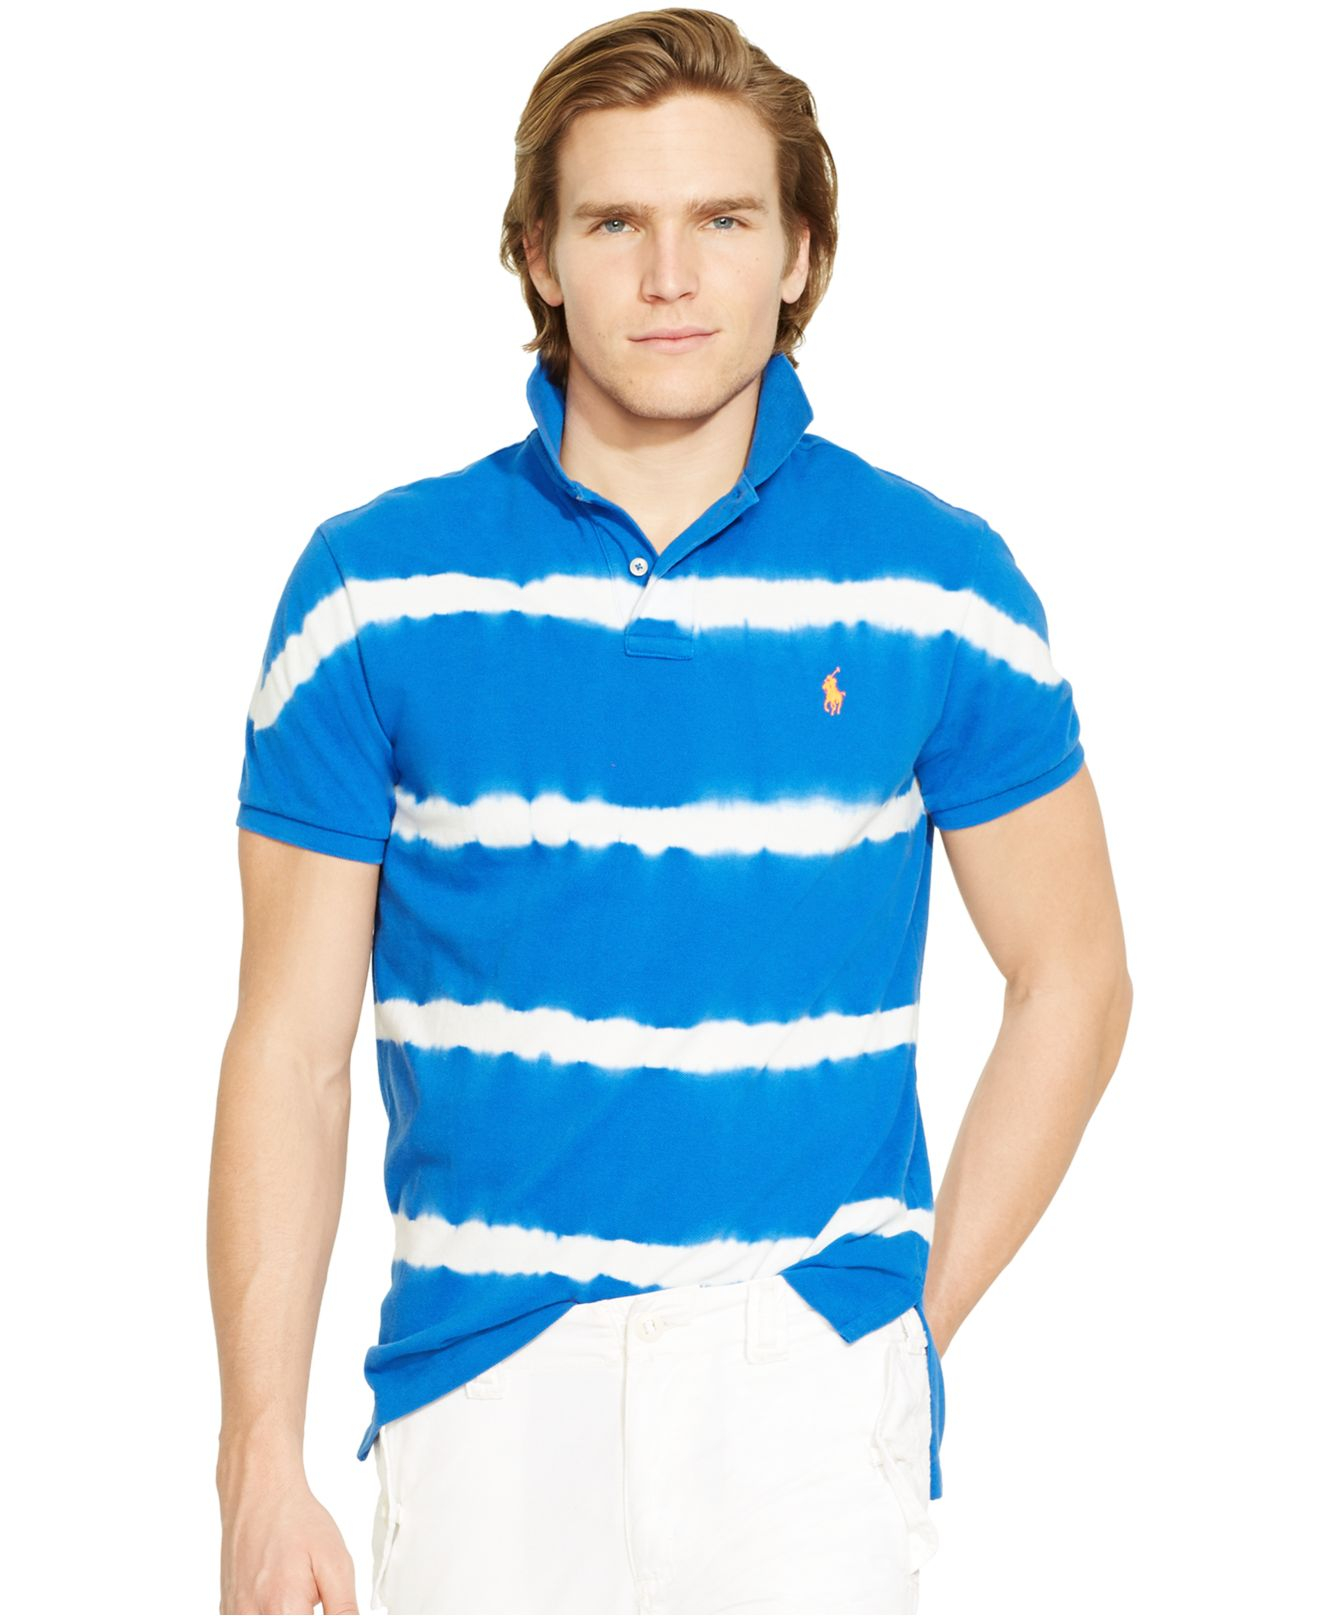 Polo Ralph Lauren Custom Fit Tie Dyed Polo Shirt In Blue